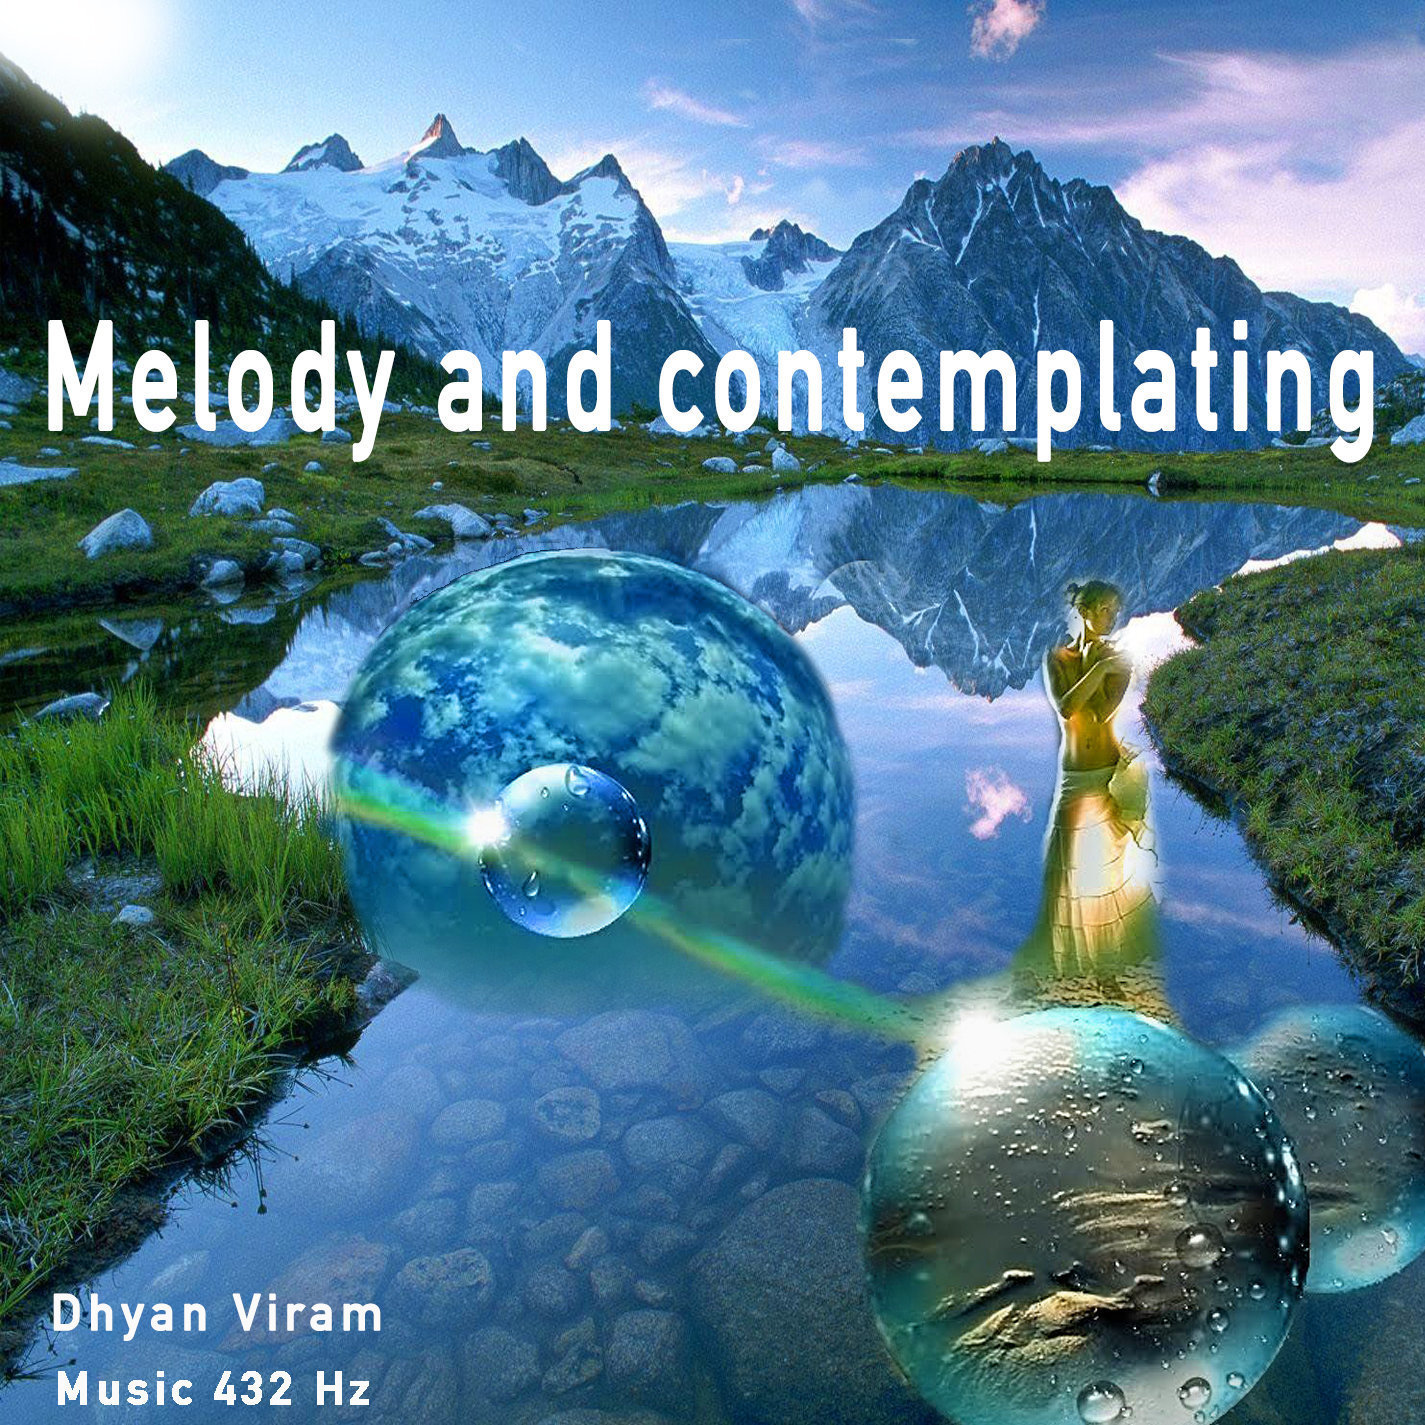 Melody and contemplating